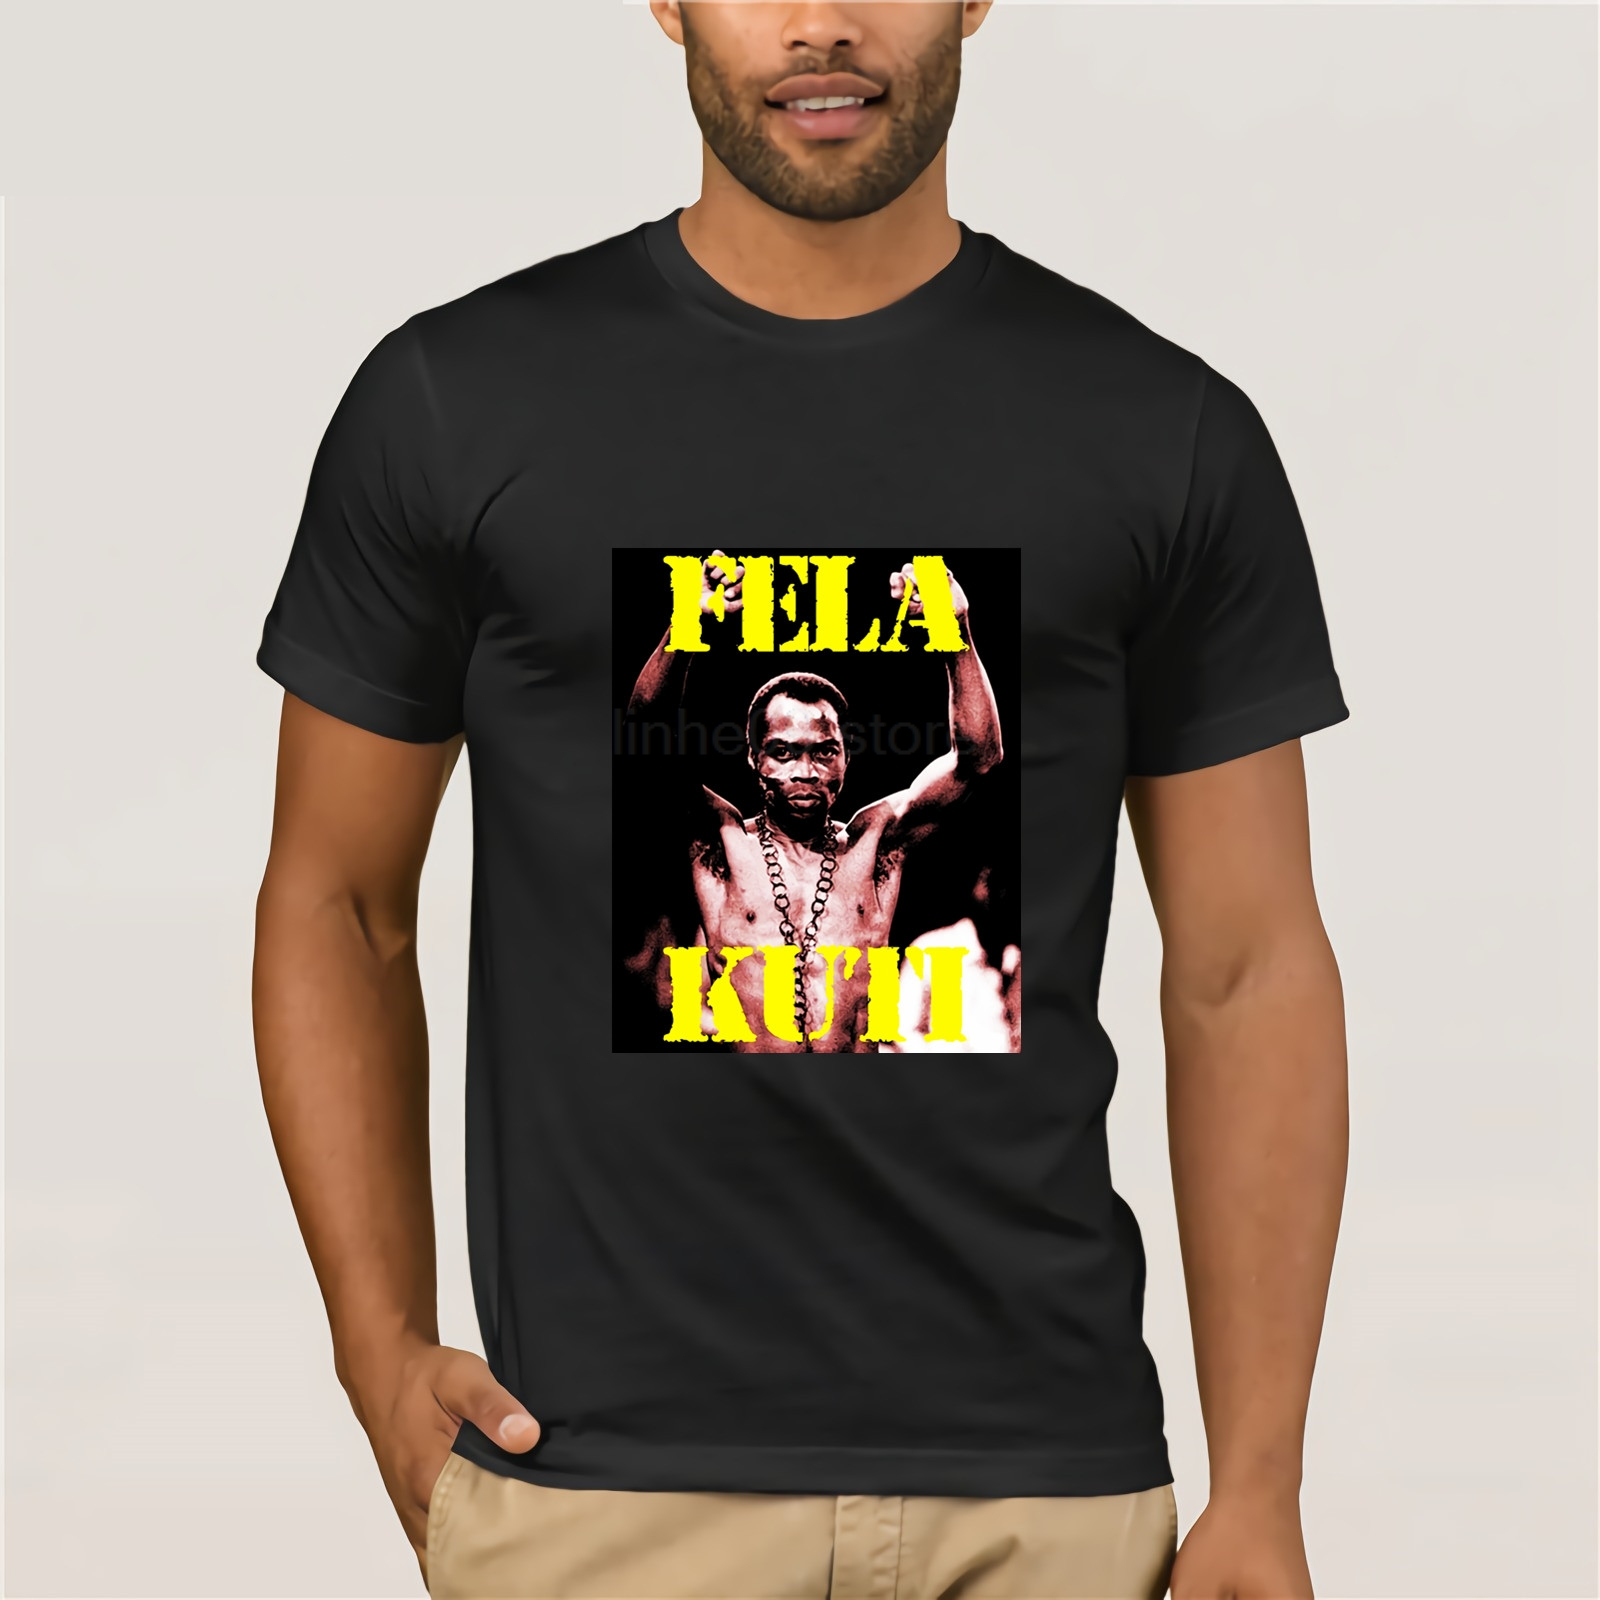 Fela Kuti T-shirt,musician, composer the Afrobeat ,free delivery Print Tee Men Short Sleeve Clothing 2018 Latest image